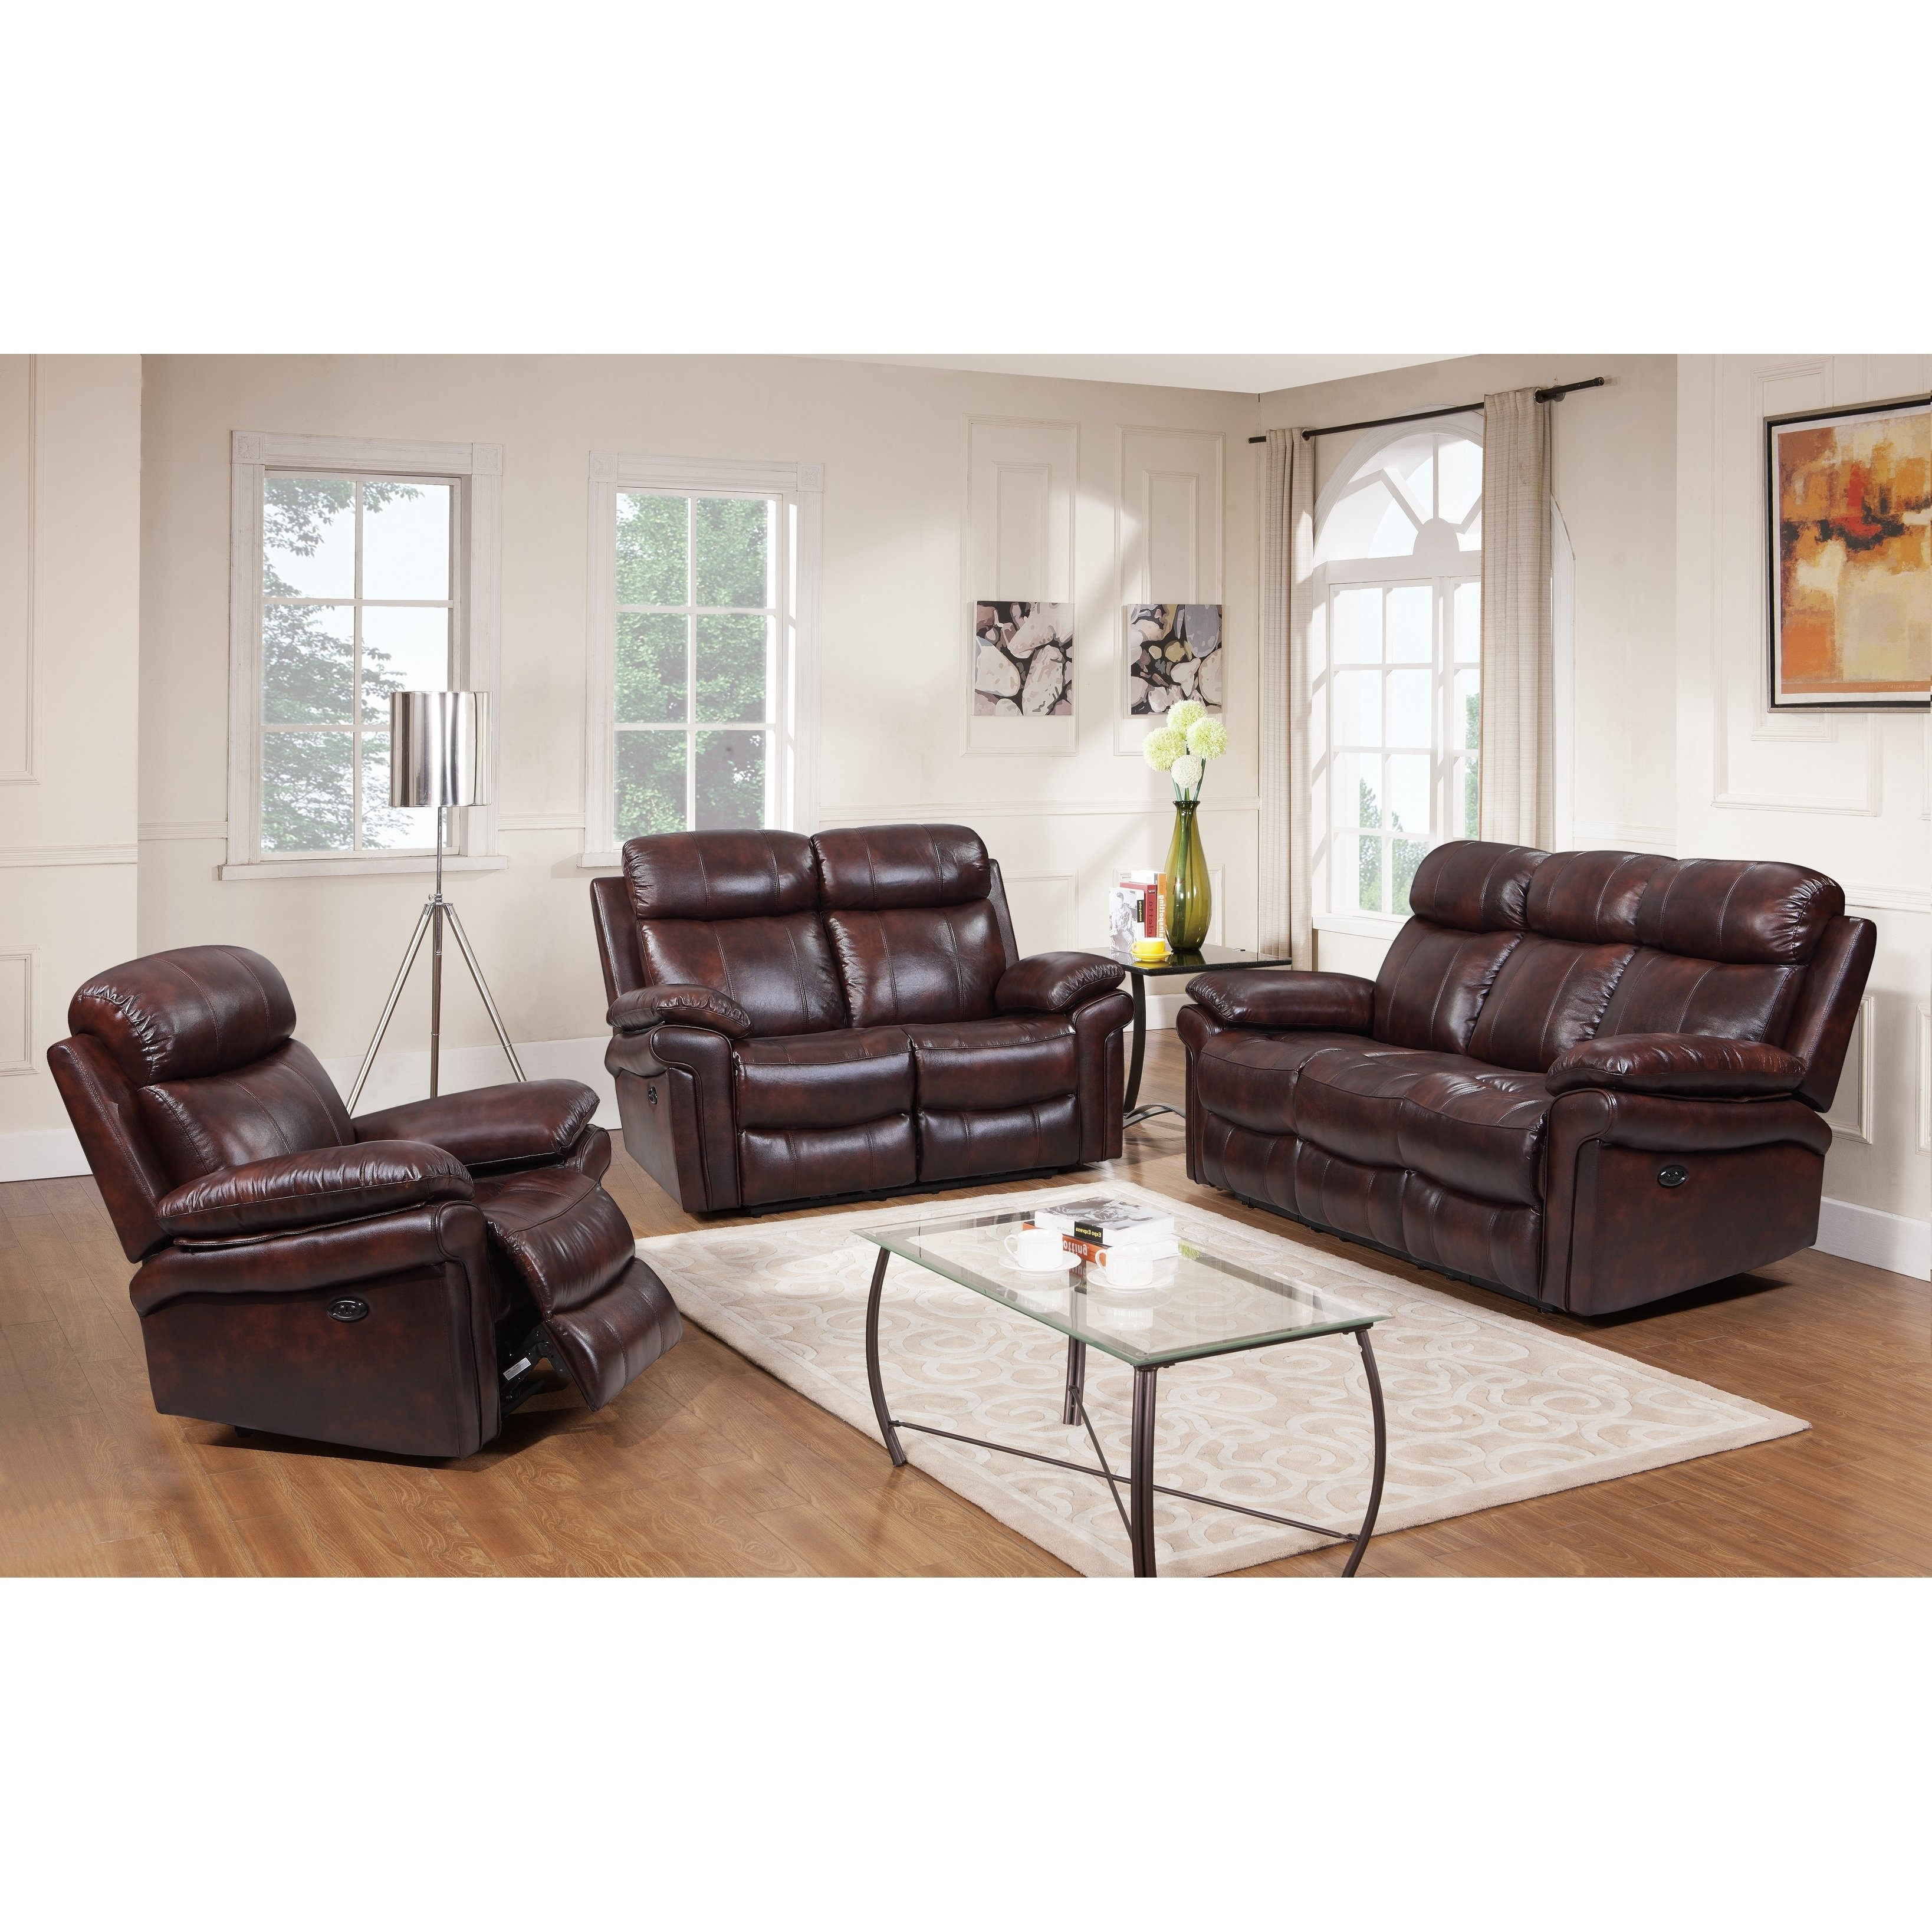 Shop Hudson Top Grain Leather Power Reclining Living Room Set Brown pertaining to 14 Awesome Initiatives of How to Build Living Room Leather Set